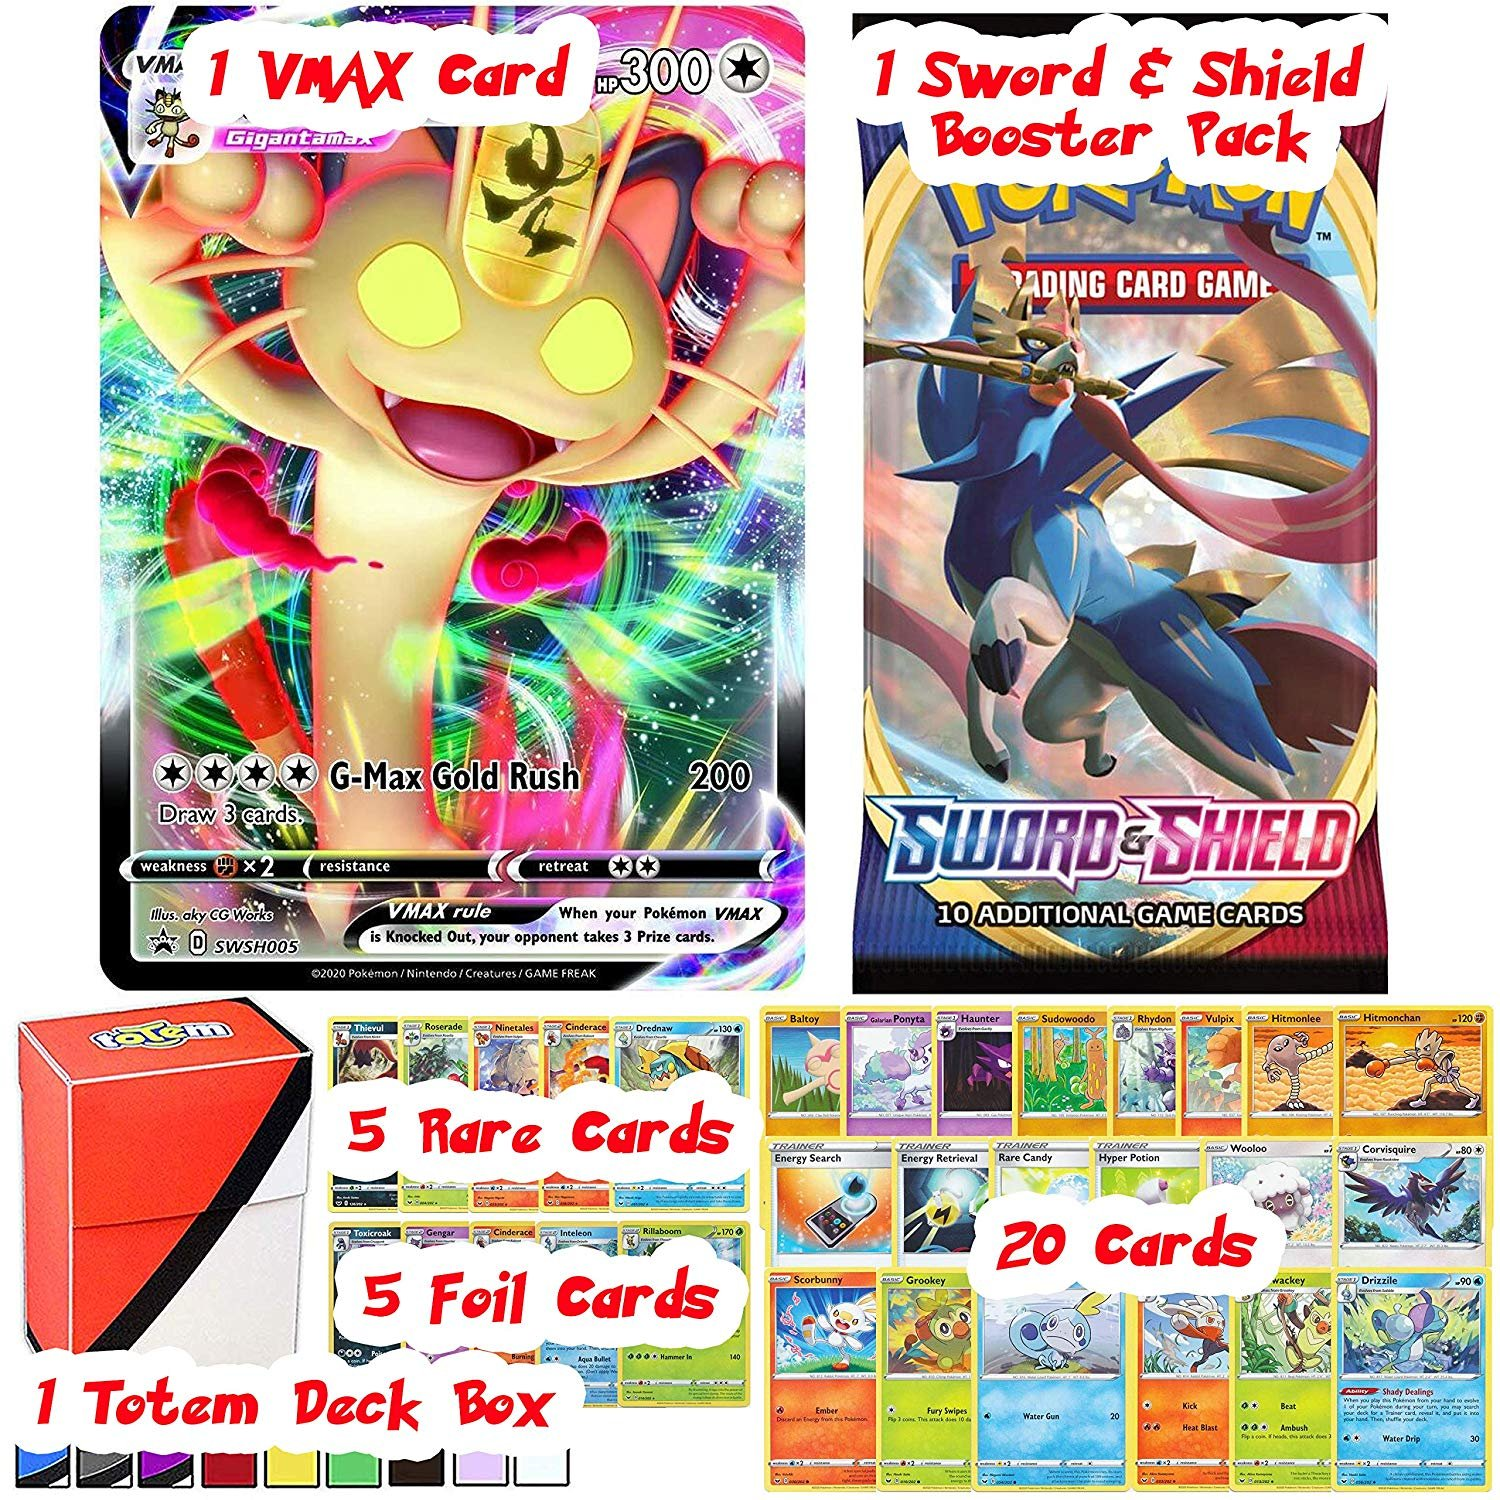 Totem World Sword and Shield VMAX Card Guaranteed with Booster Pack, 5  Rare, 5 Foil Holo, 20 Regular Pokemon Cards and Totem Deck Box -  Walmart.com - Walmart.com